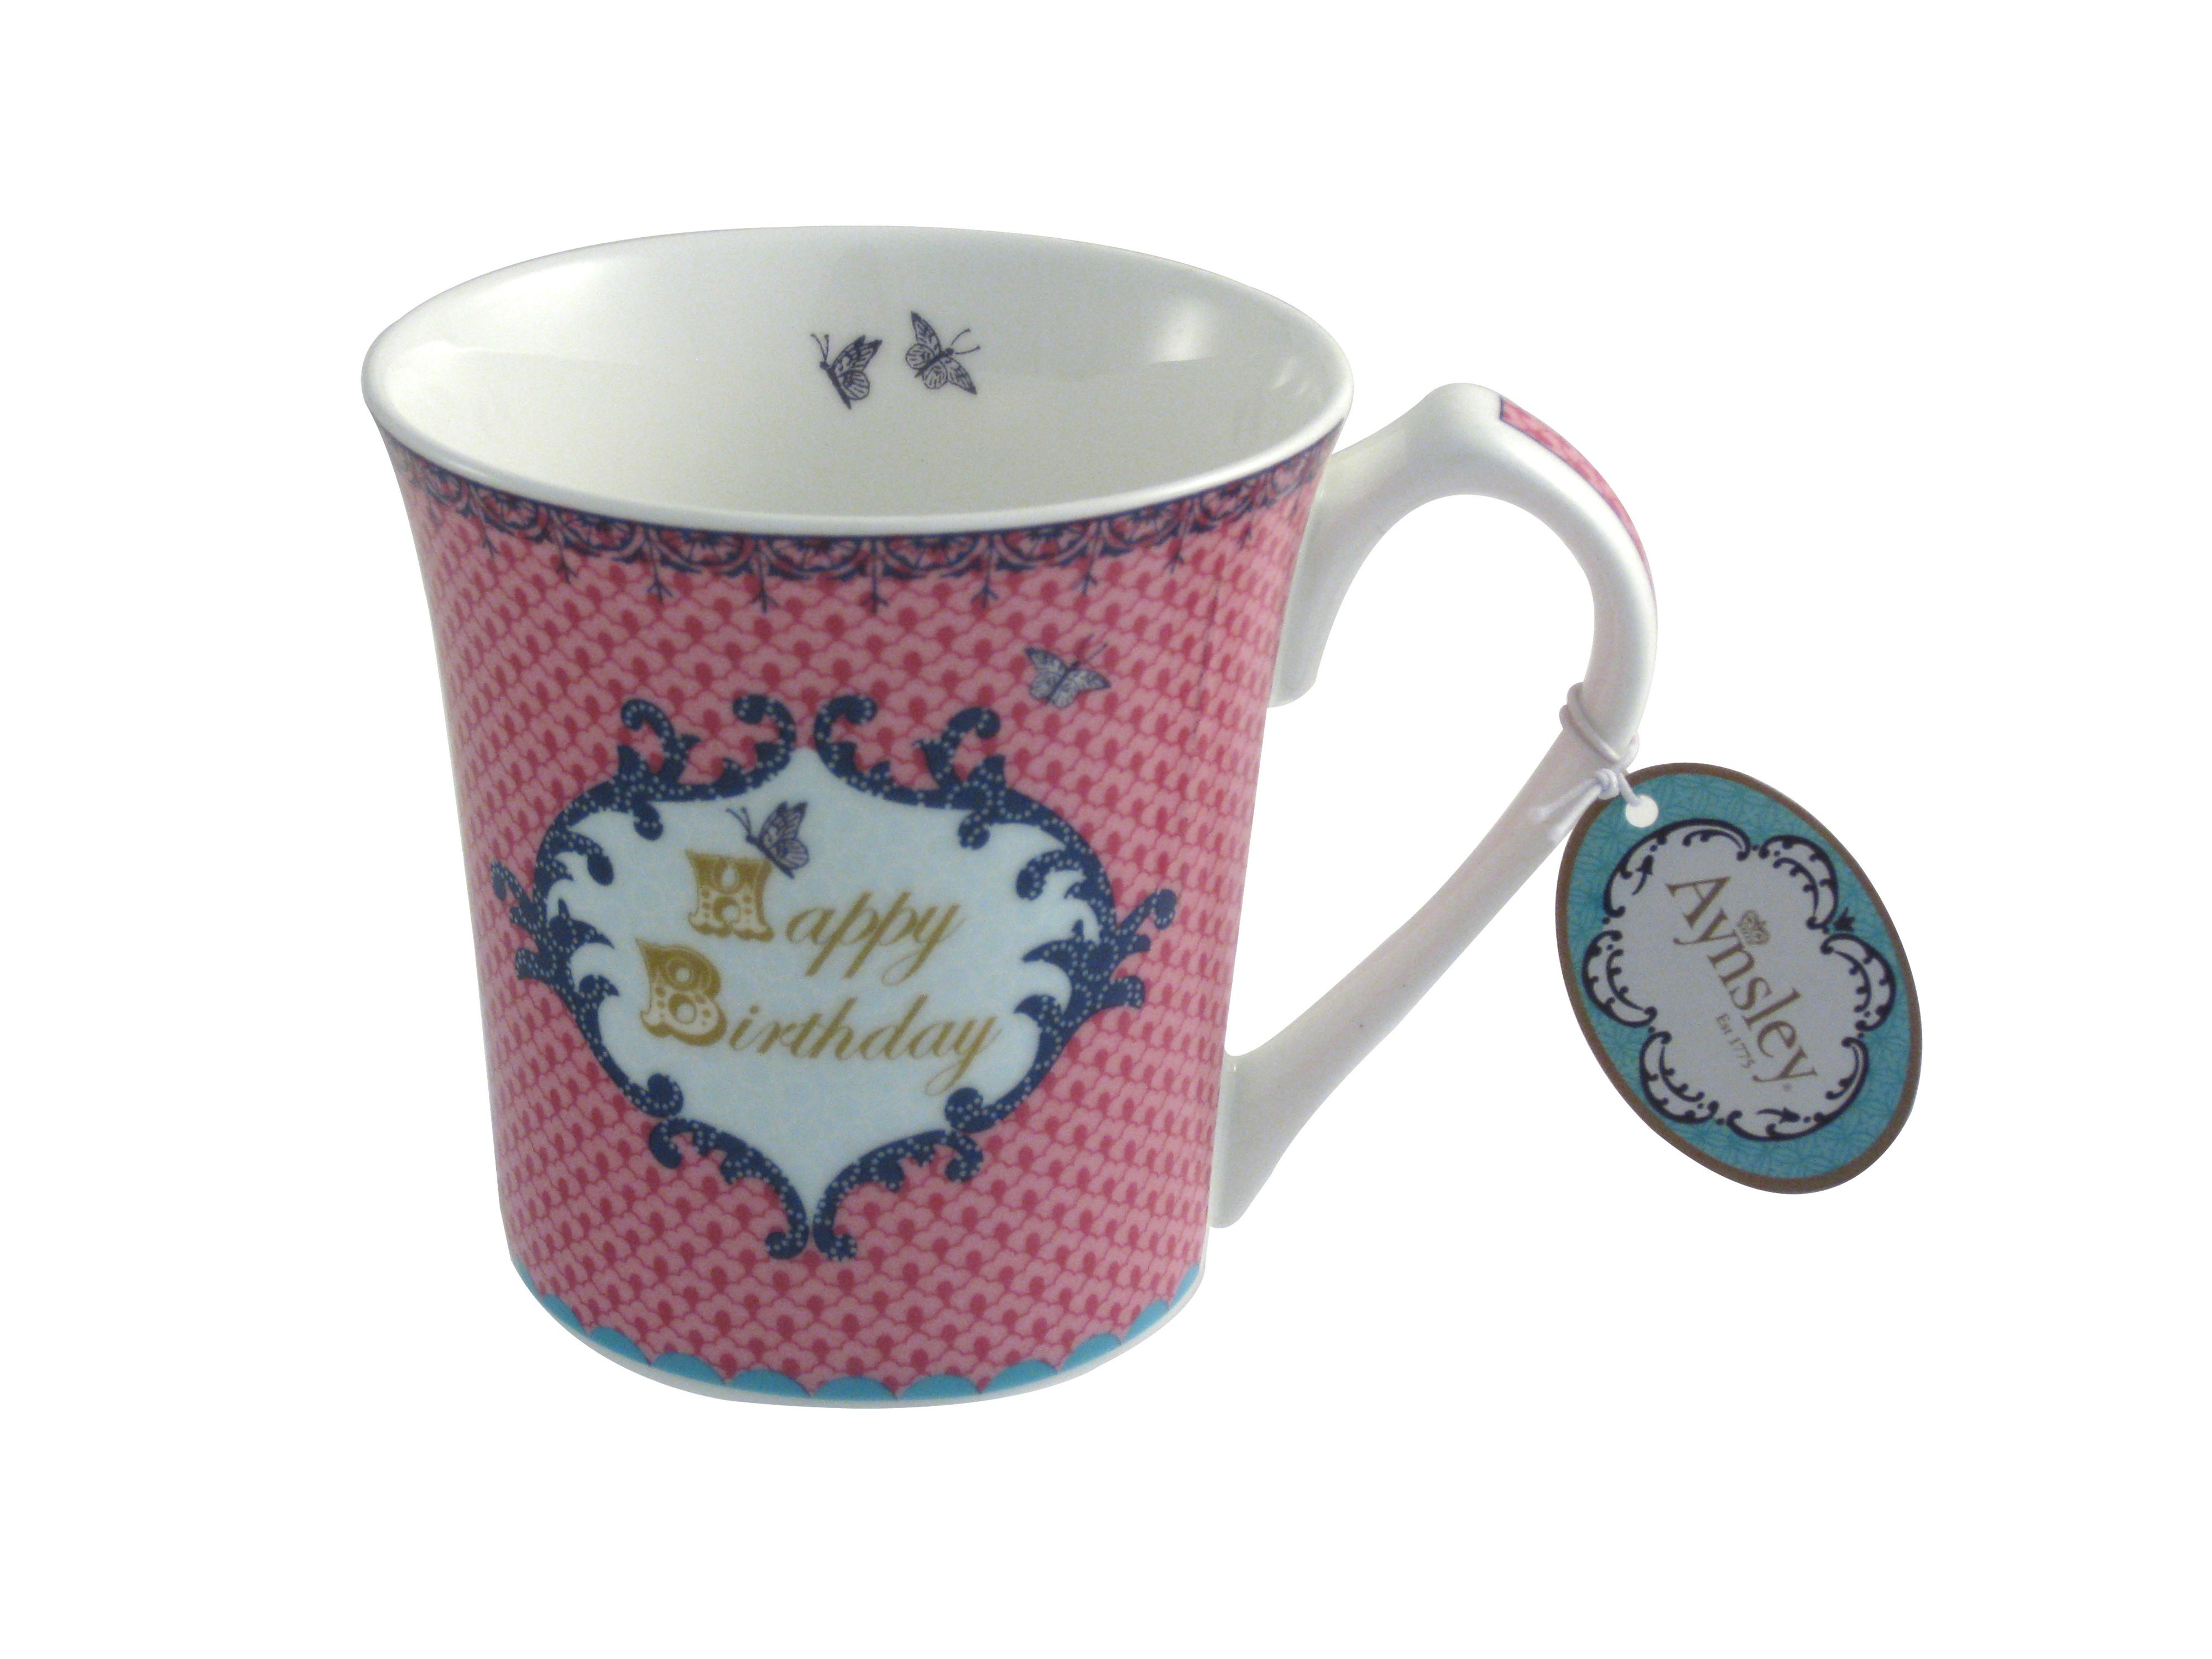 Loved one Birthday pink mug